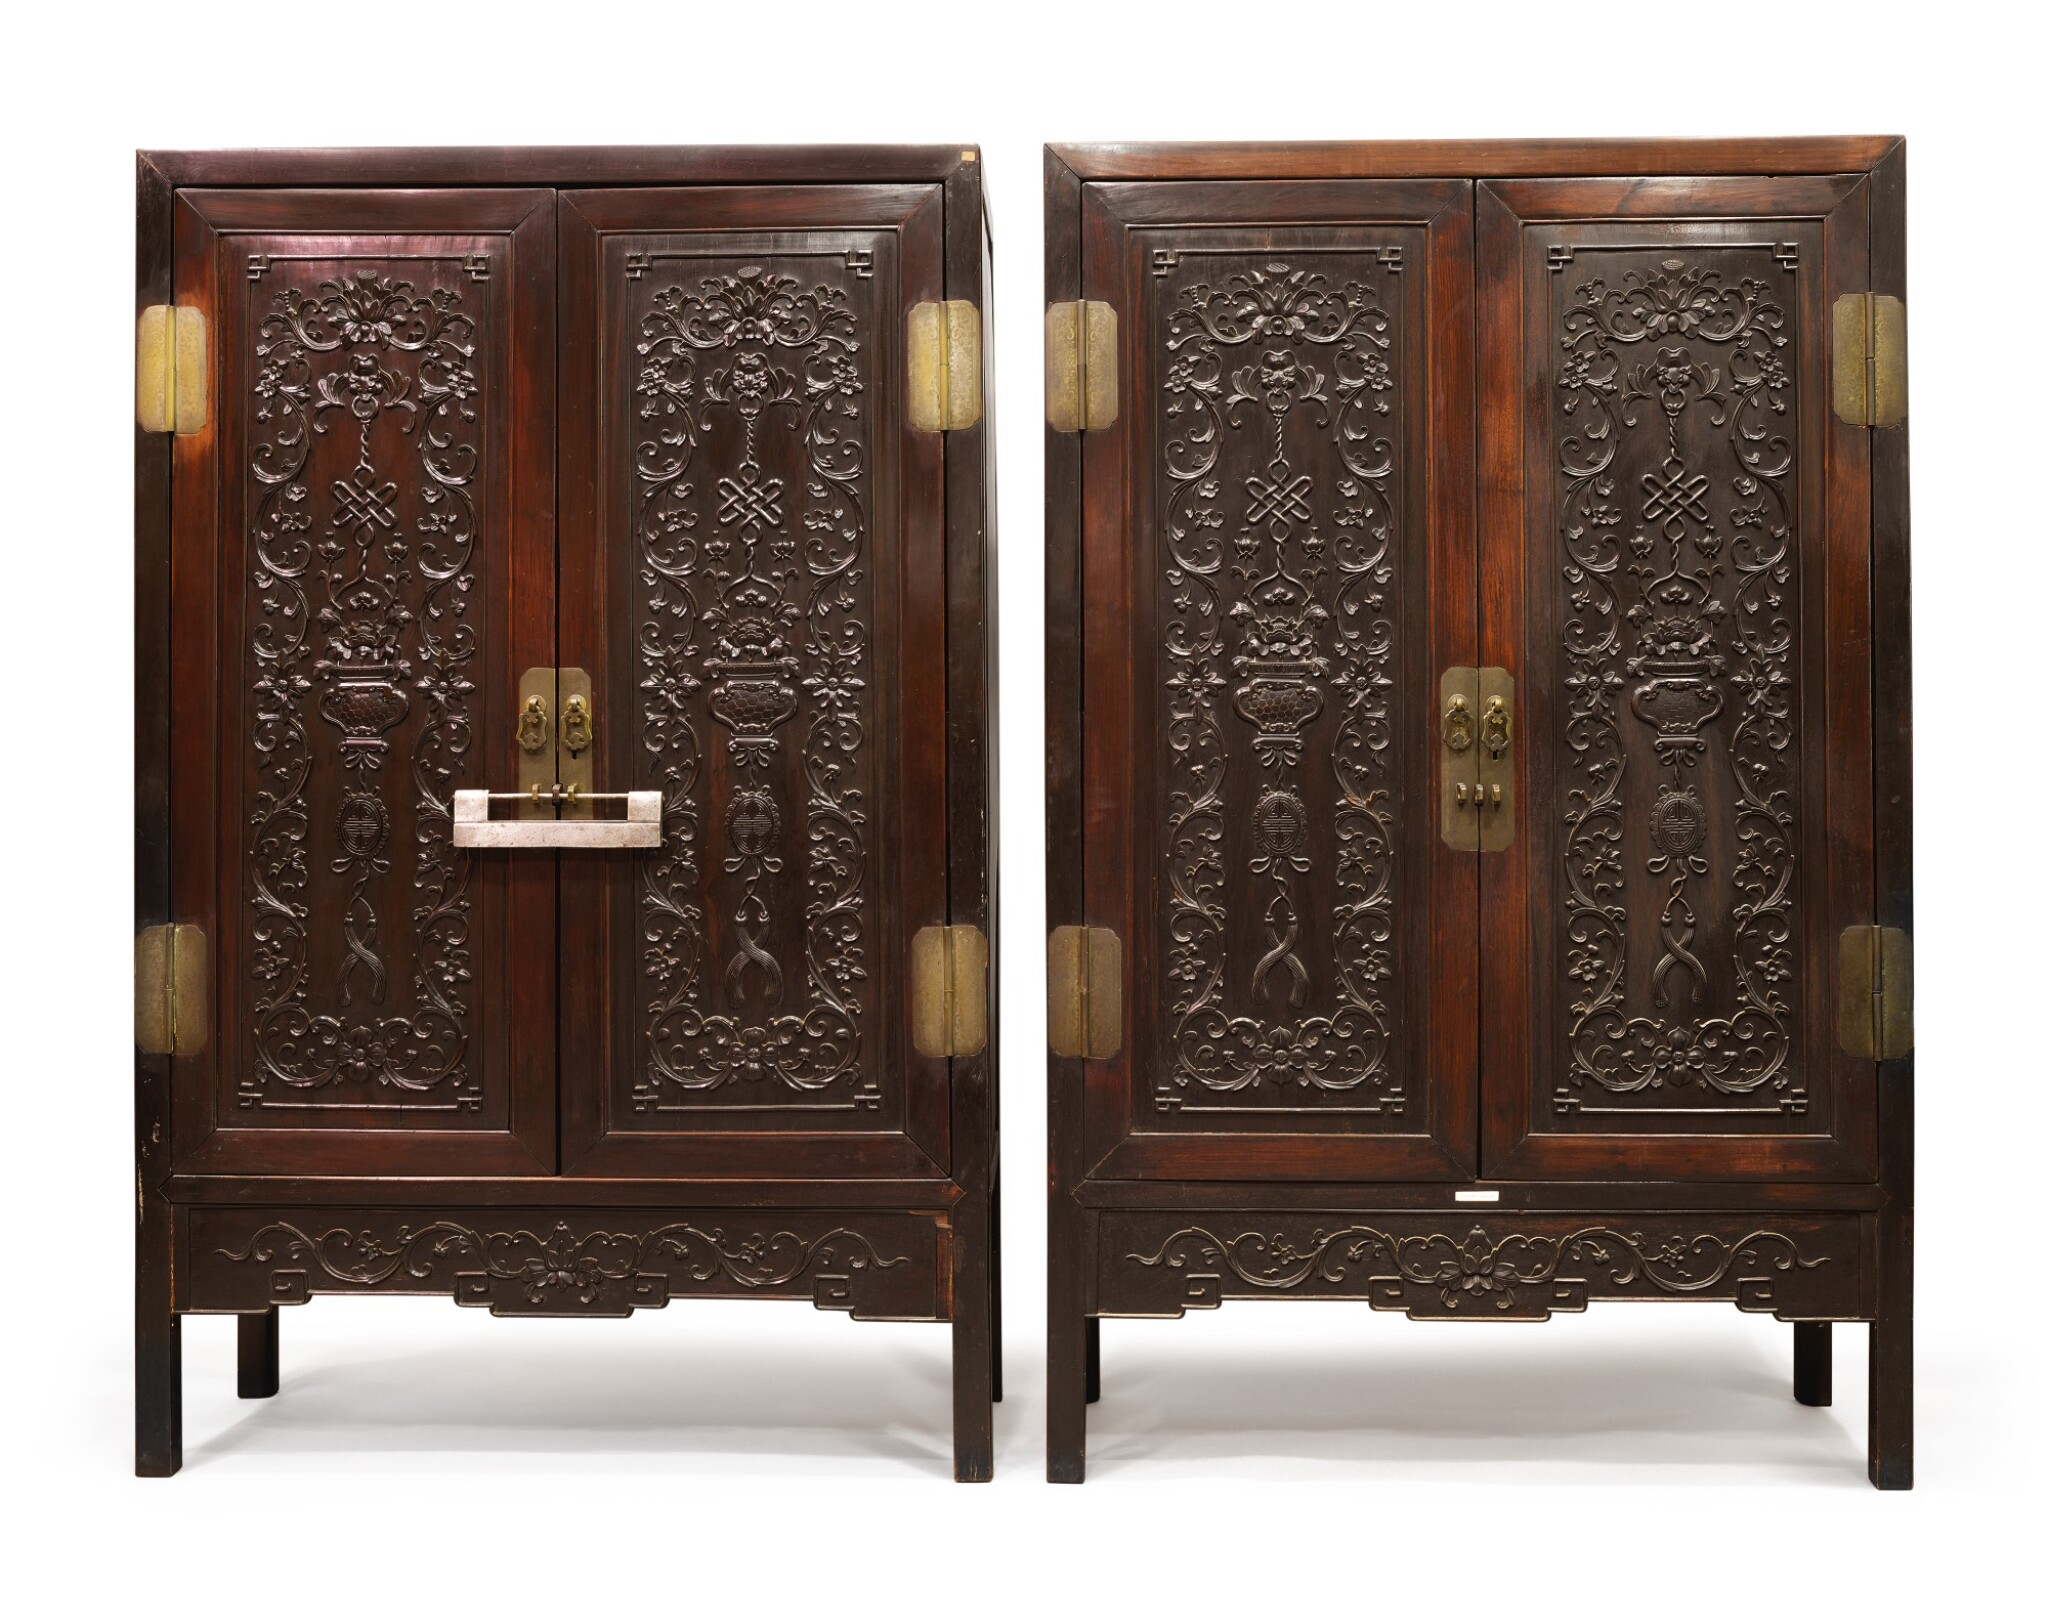 View 1 of Lot 1043. A PAIR OF CARVED 'HONGMU' SQUARE-CORNER CABINETS, LATE 19TH / EARLY 20TH CENTURY.